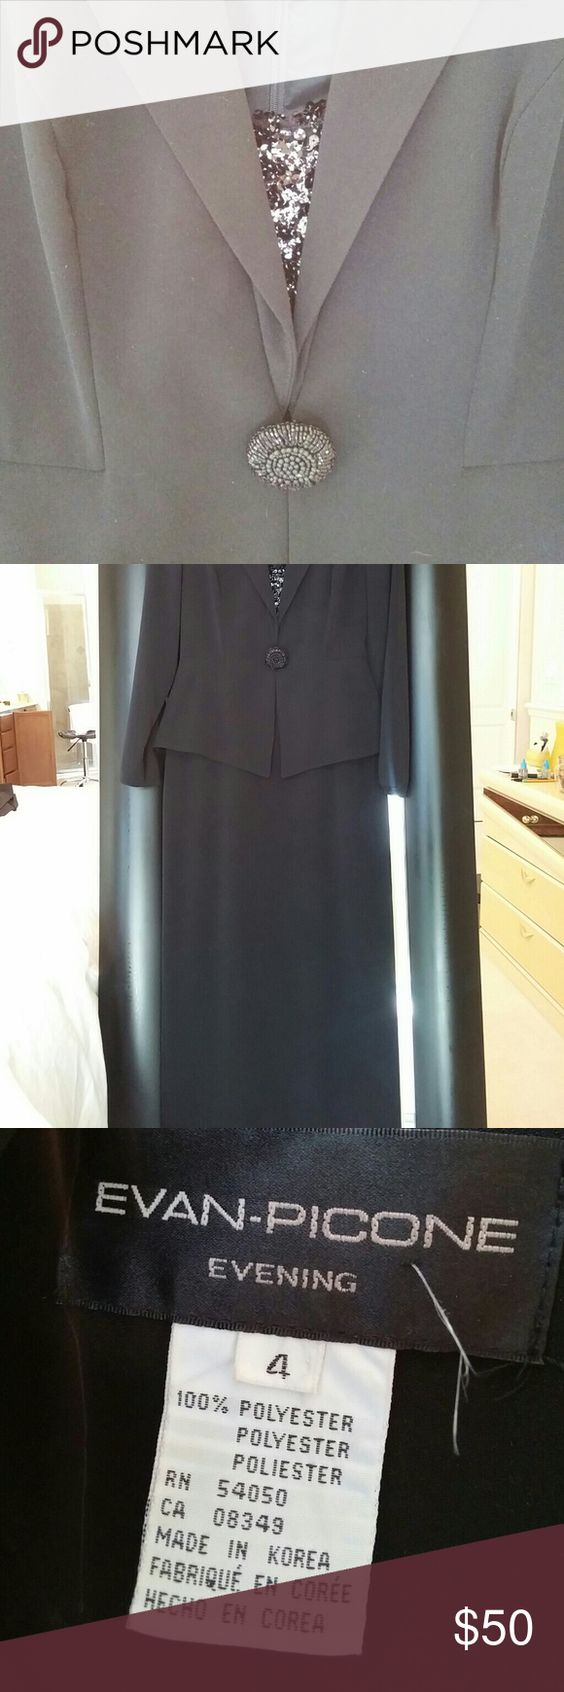 Evan Piccone one piece suit dress. One piece size 4 jacket dress with black sequence. Worn once. Evan Picone Dresses